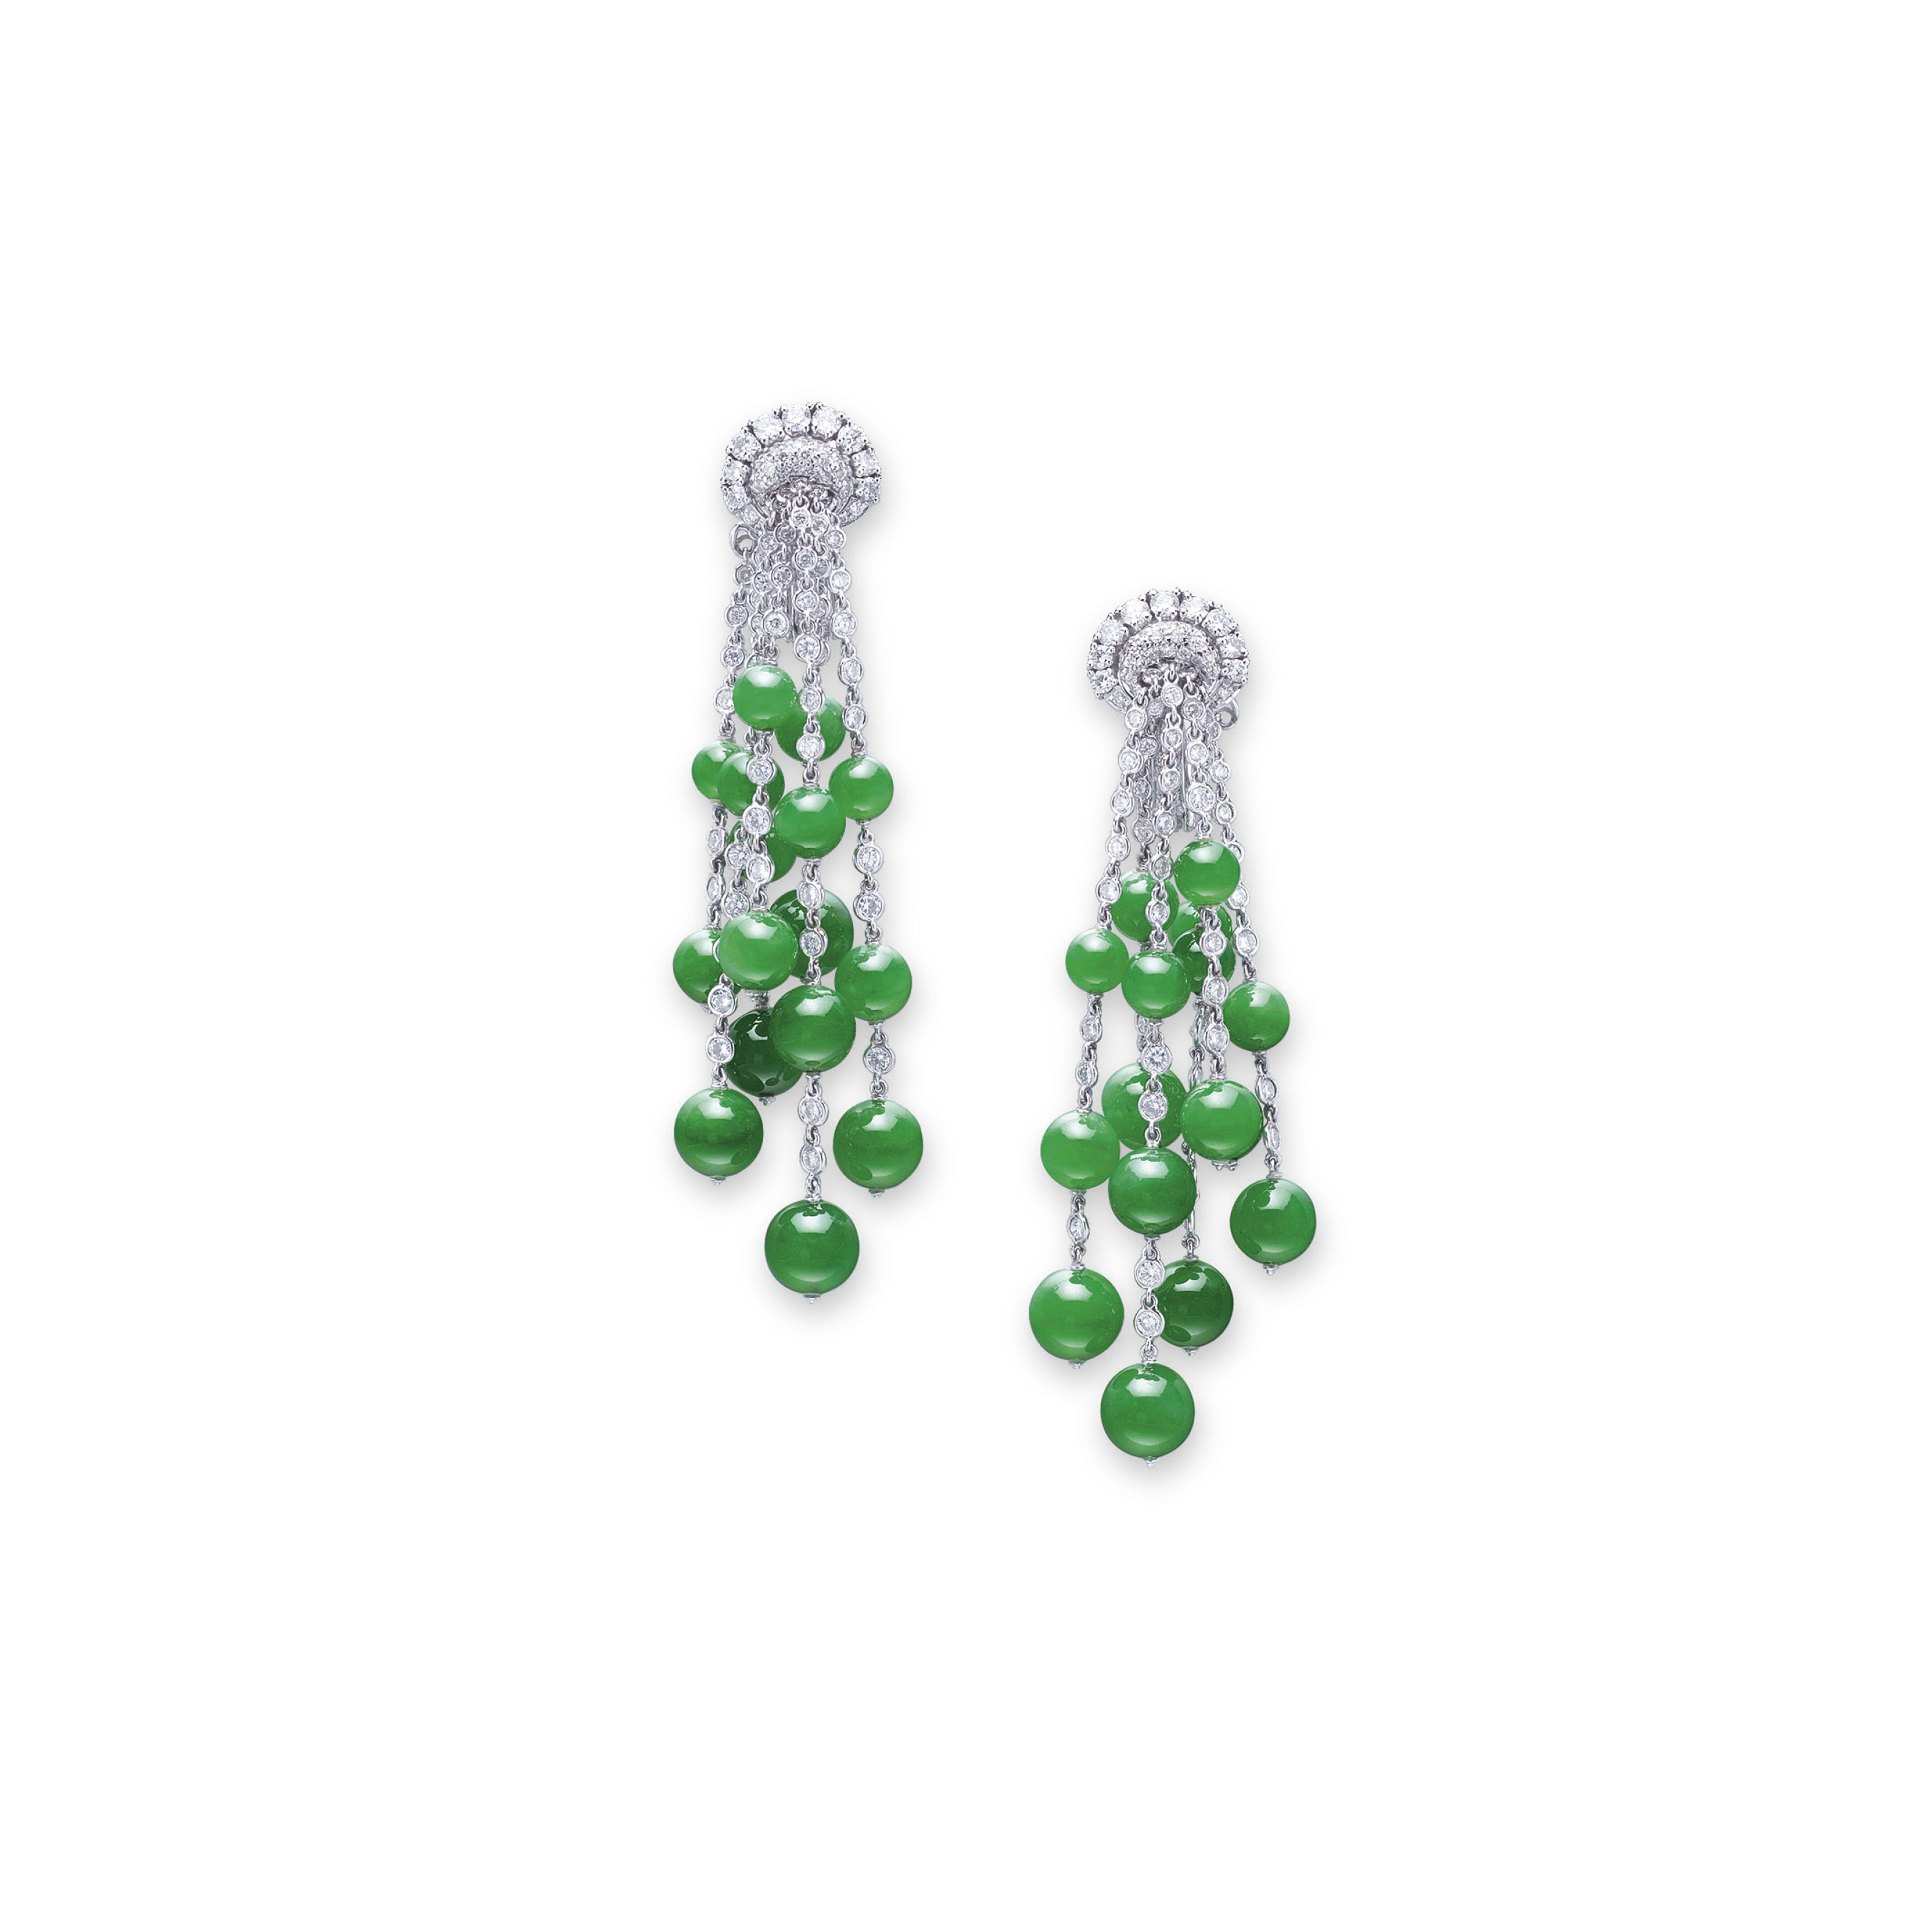 A PAIR OF JADEITE AND DIAMOND EAR PENDANTS, BY MICHELE DELLA VALLE